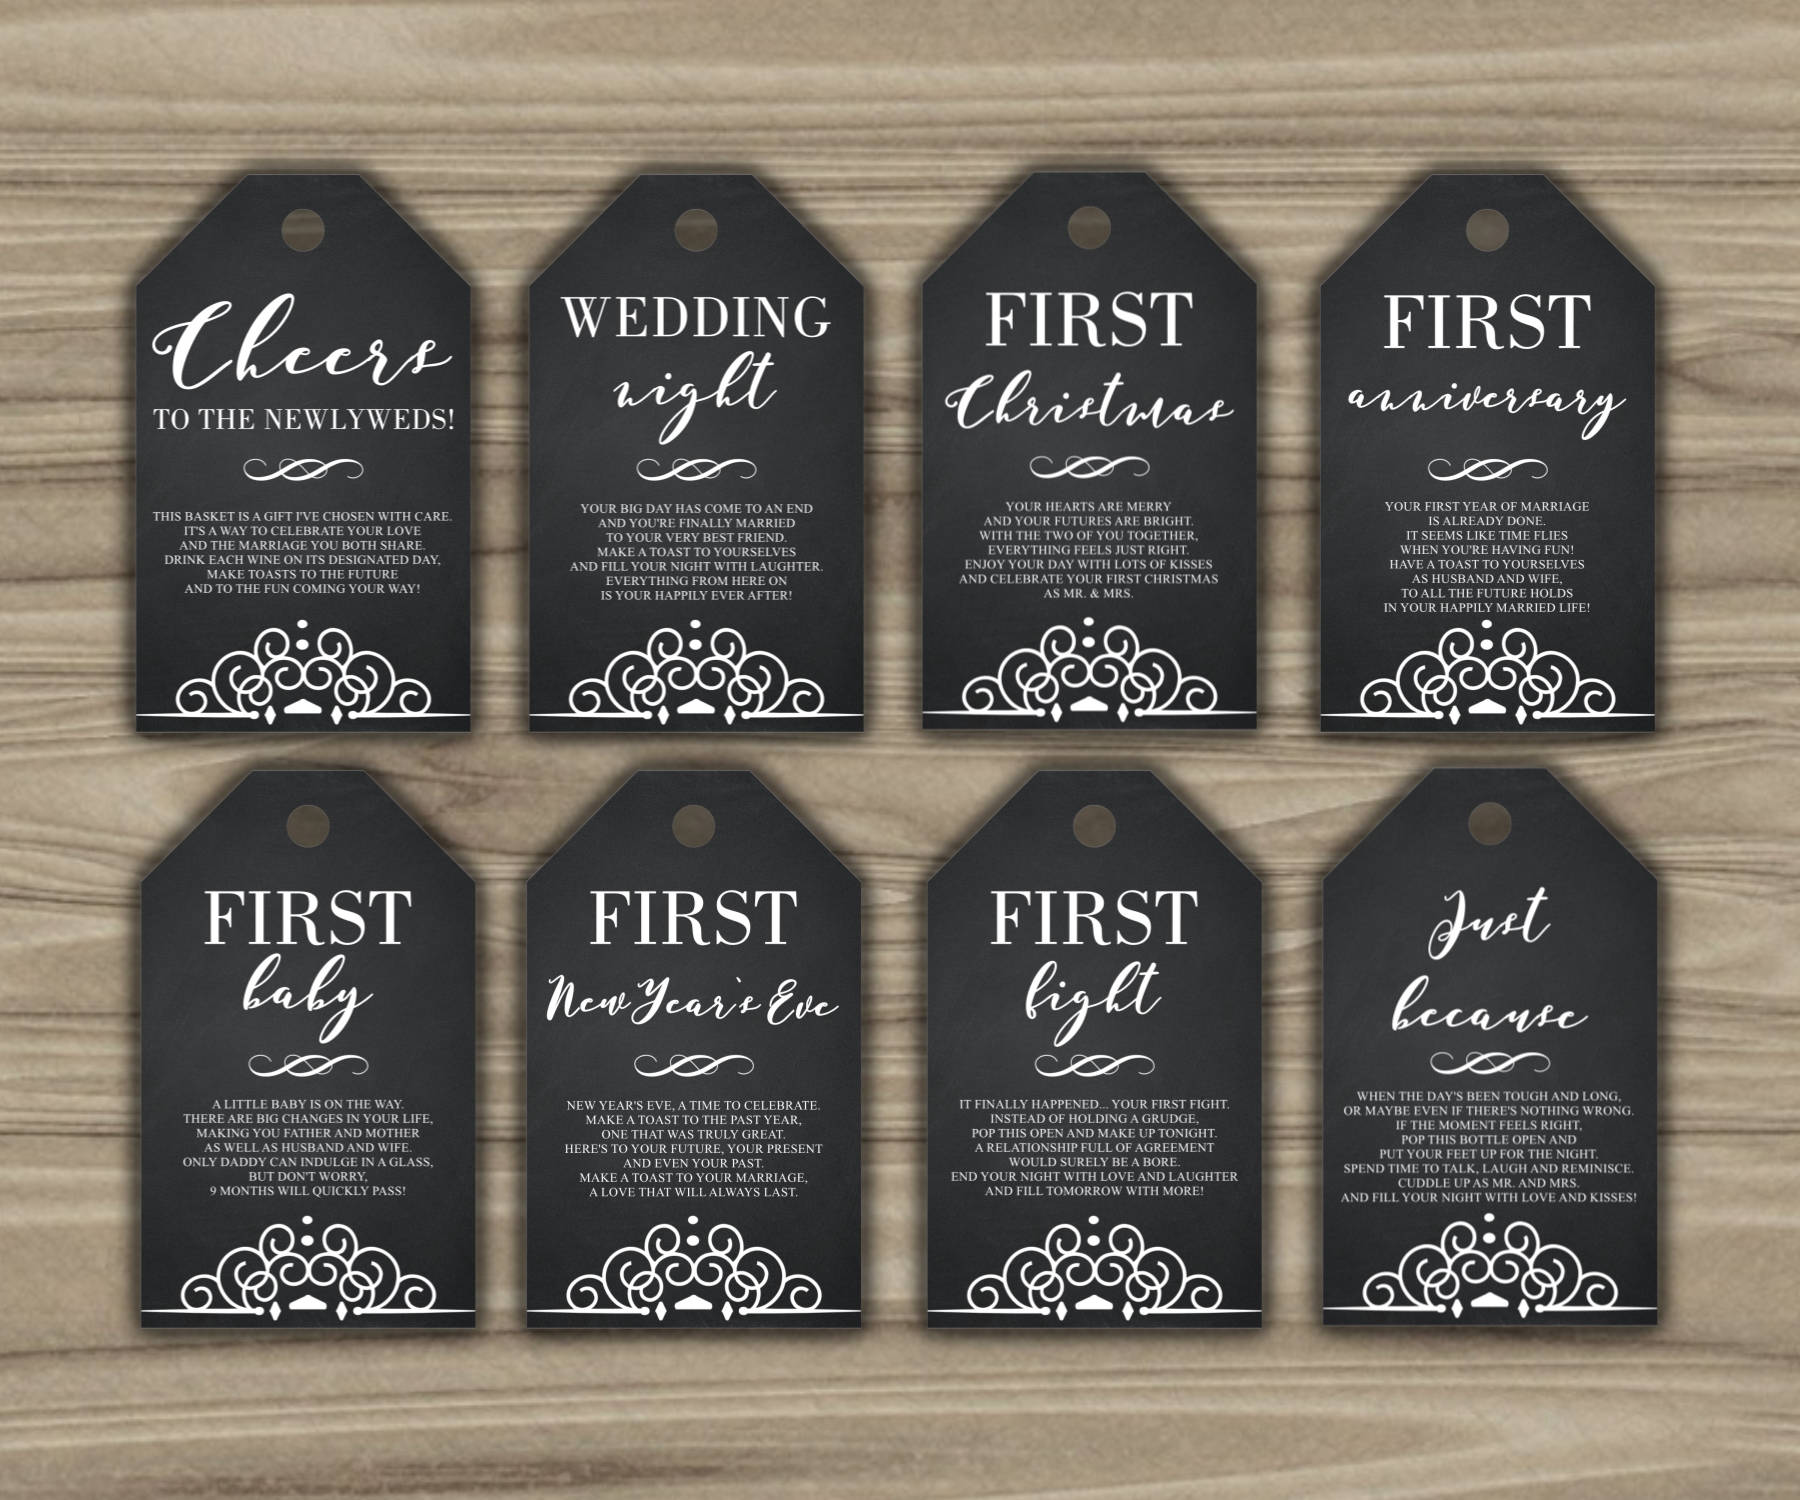 b98c4cde318 Milestone Wine Tags Bridal Shower Gift Basket Tags First